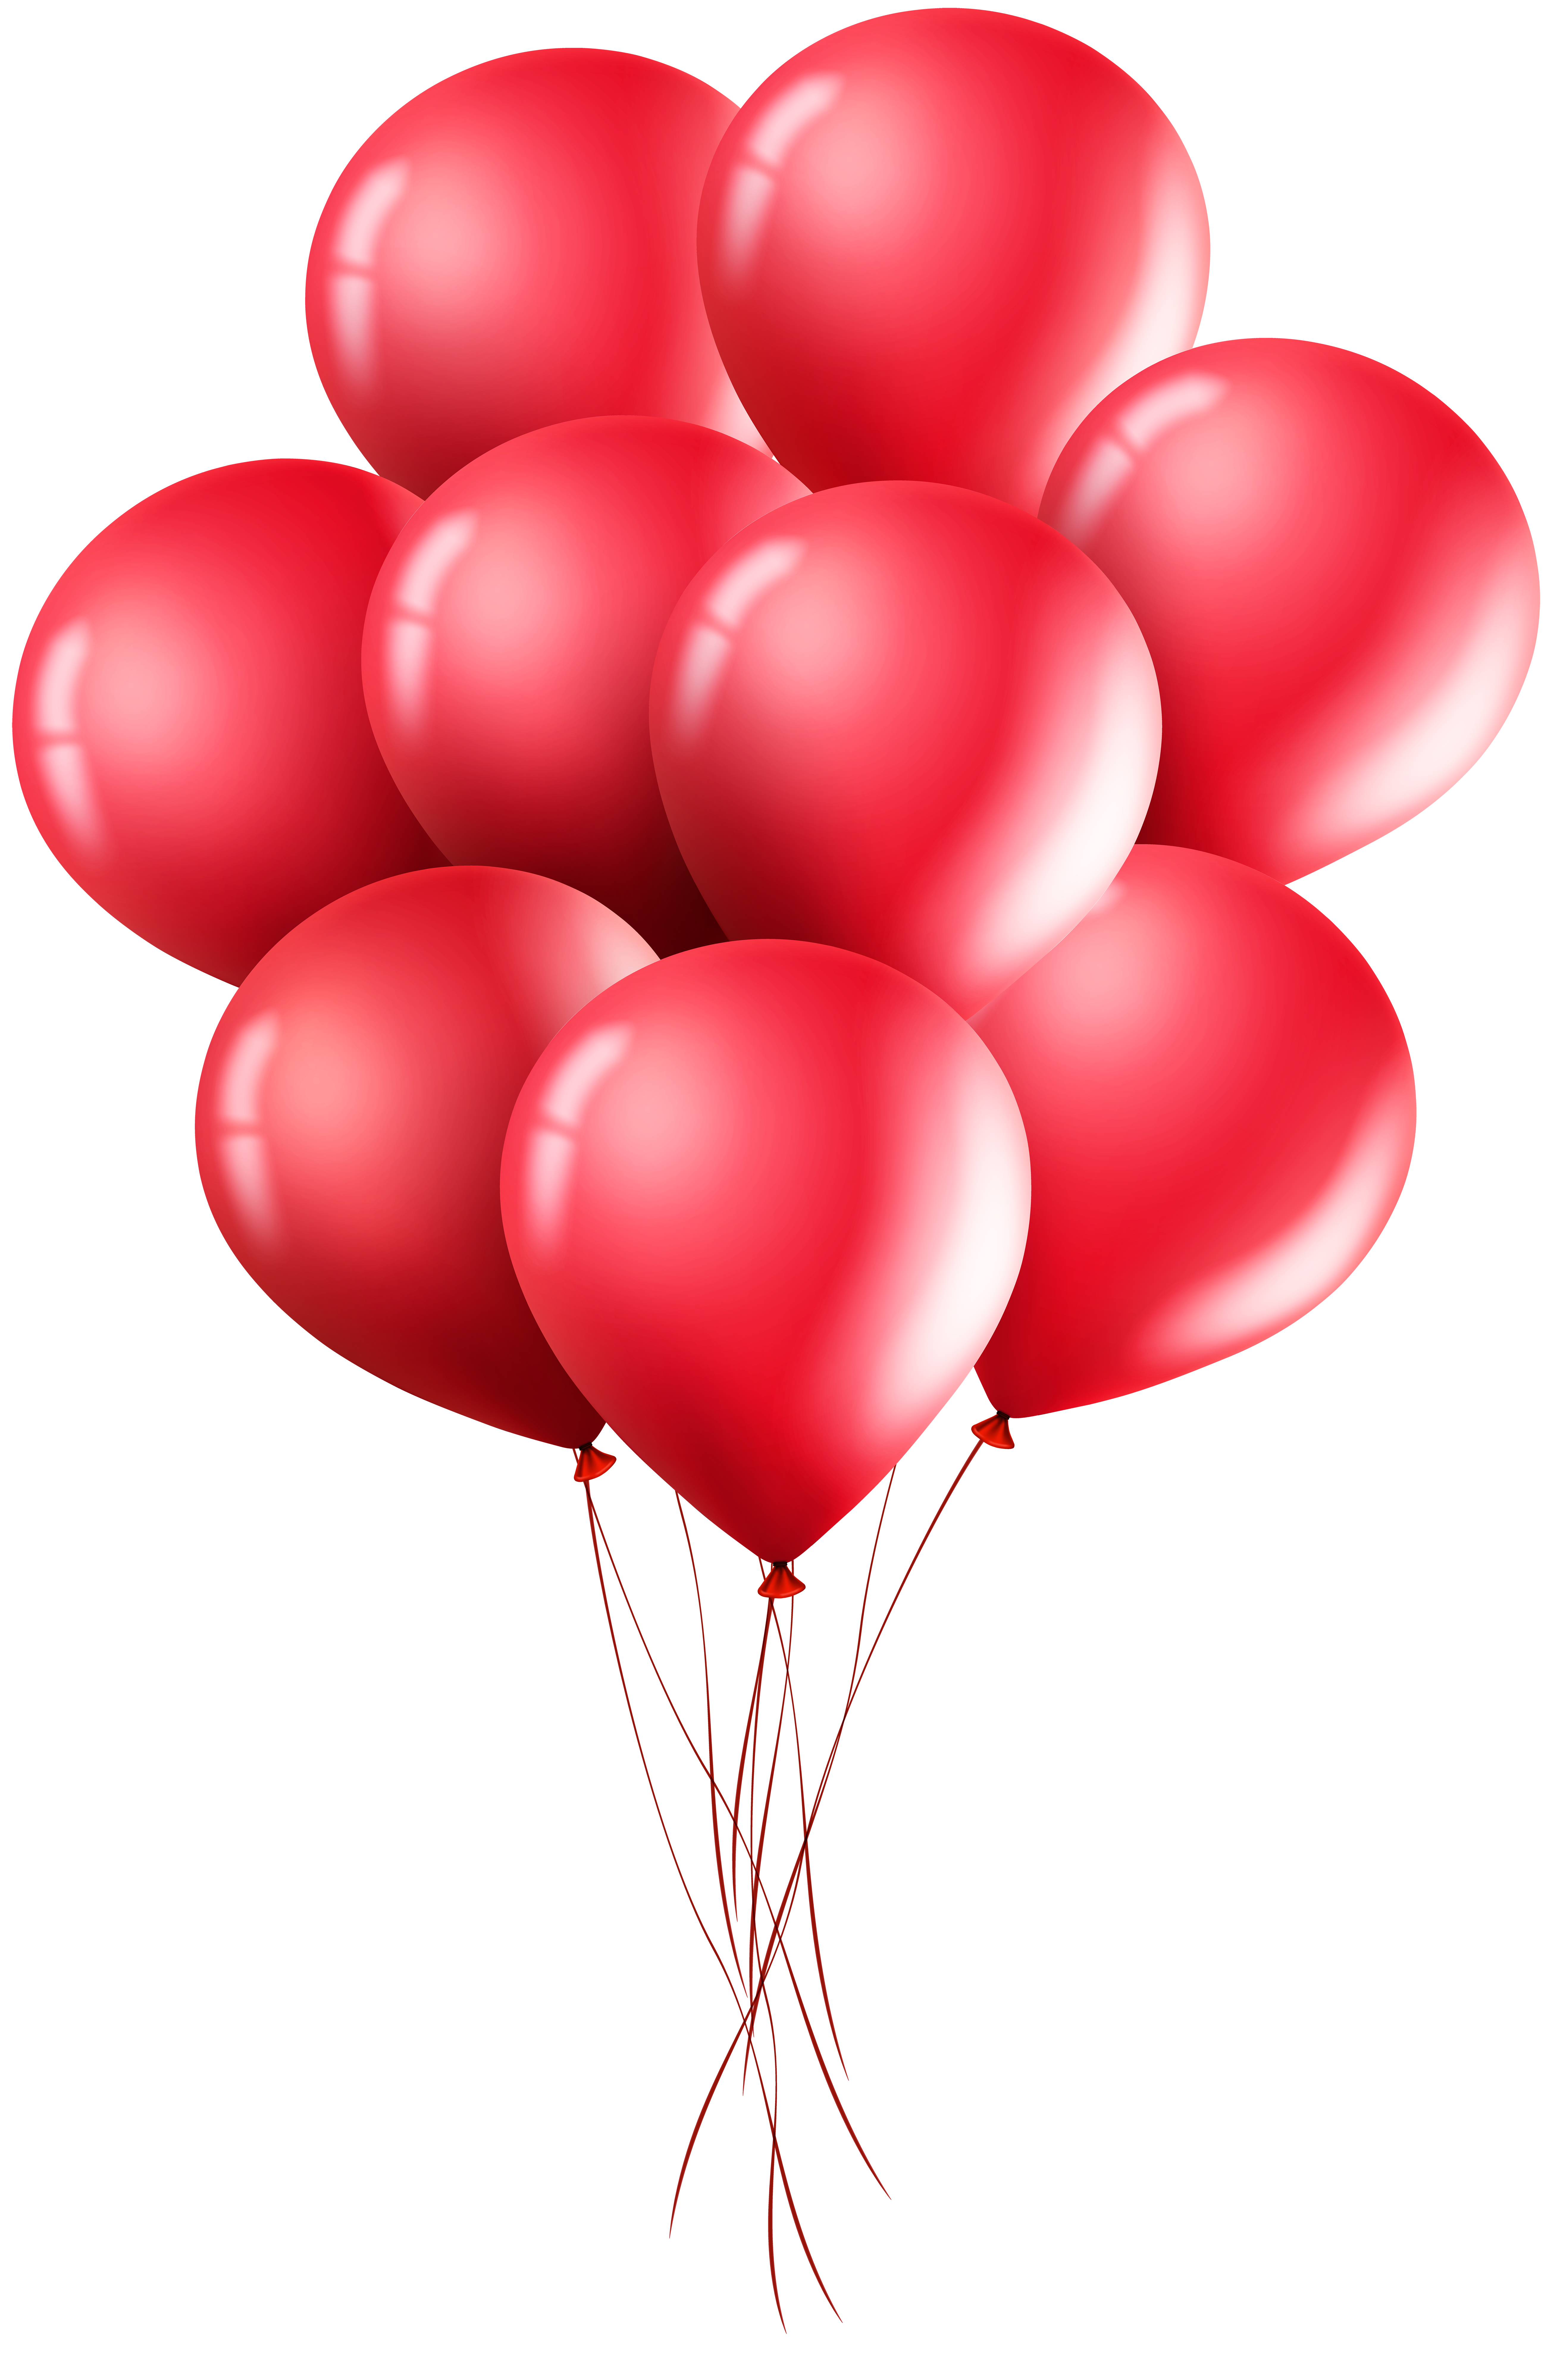 Red Balloons Png Clip Art Image Gallery Yopriceville High Quality Images And Transparent Png Free Clipart Red Balloon Clip Art Birthday Photo Frame